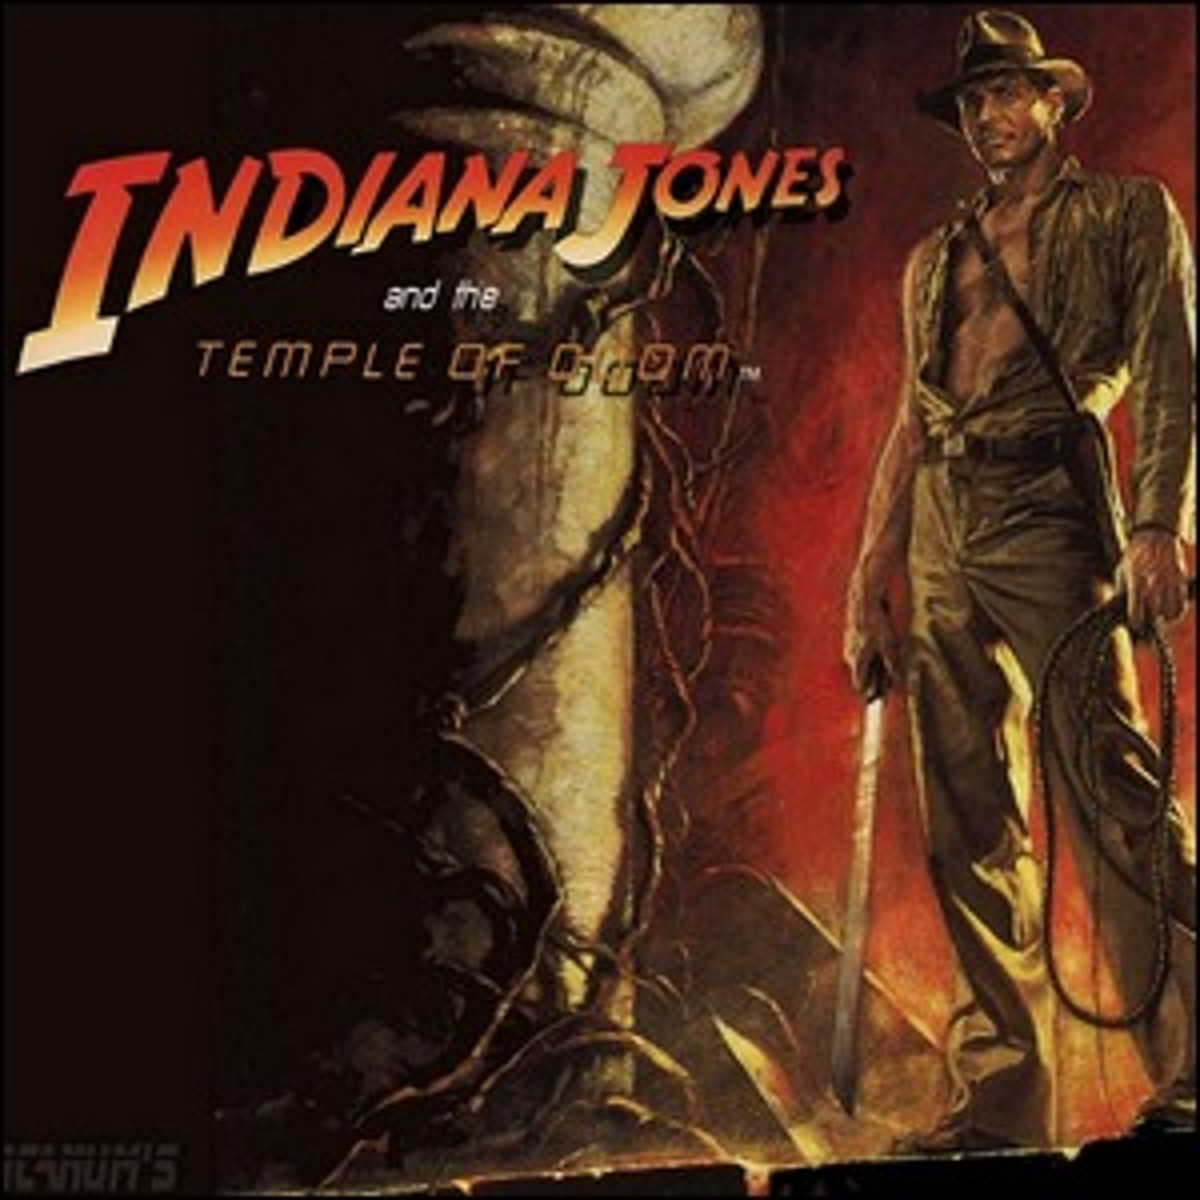 A promotional poster for Indiana Jones and the Temple of Doom.